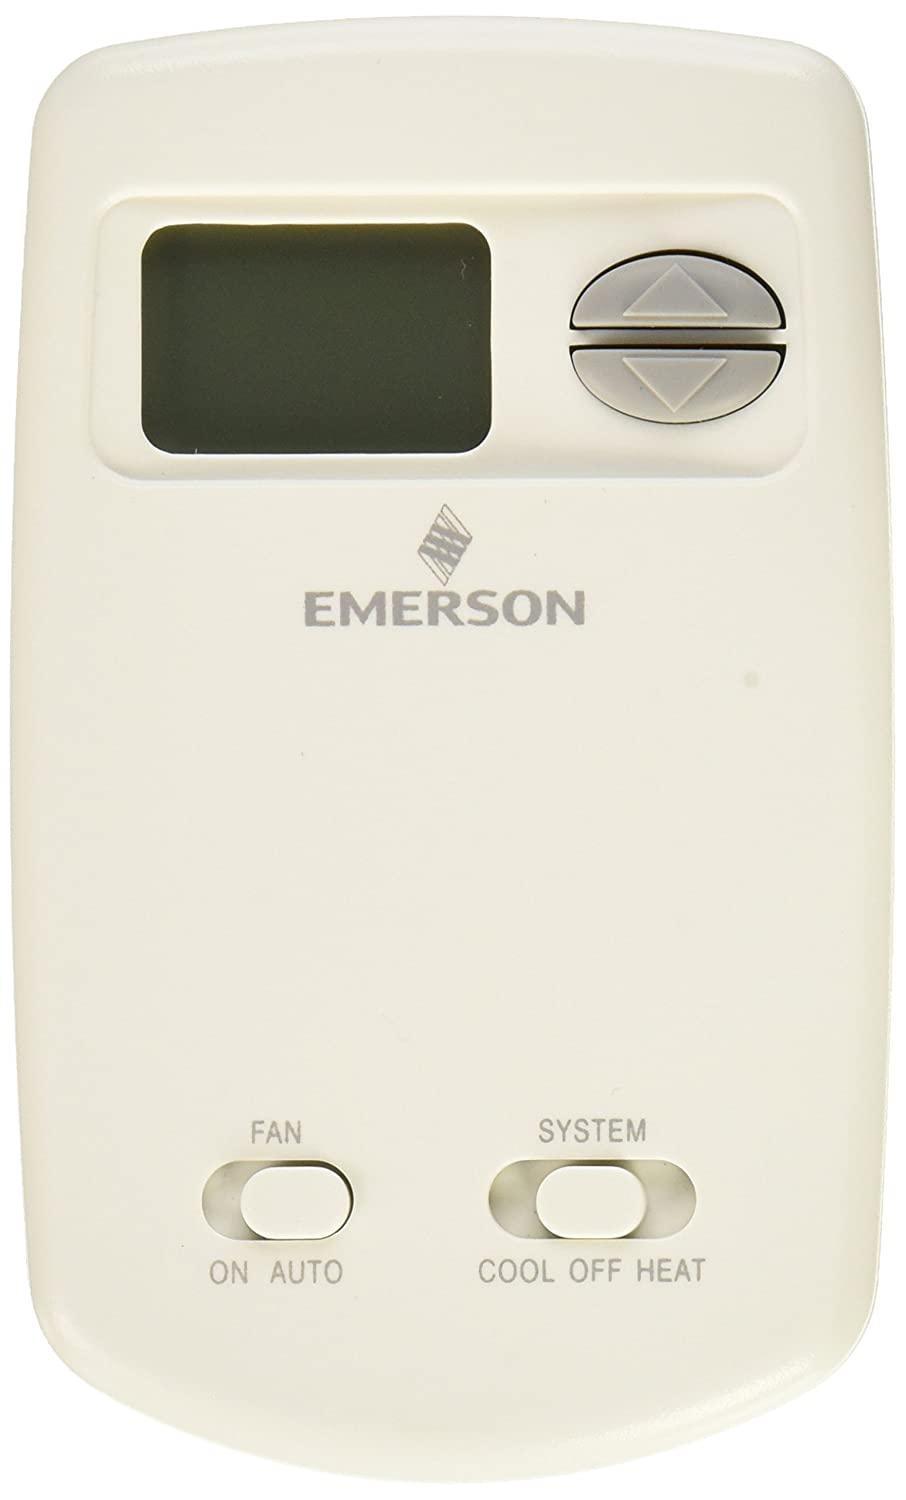 Emerson 1F78-144 Digital Heat/Cool Thermostat, Vertical